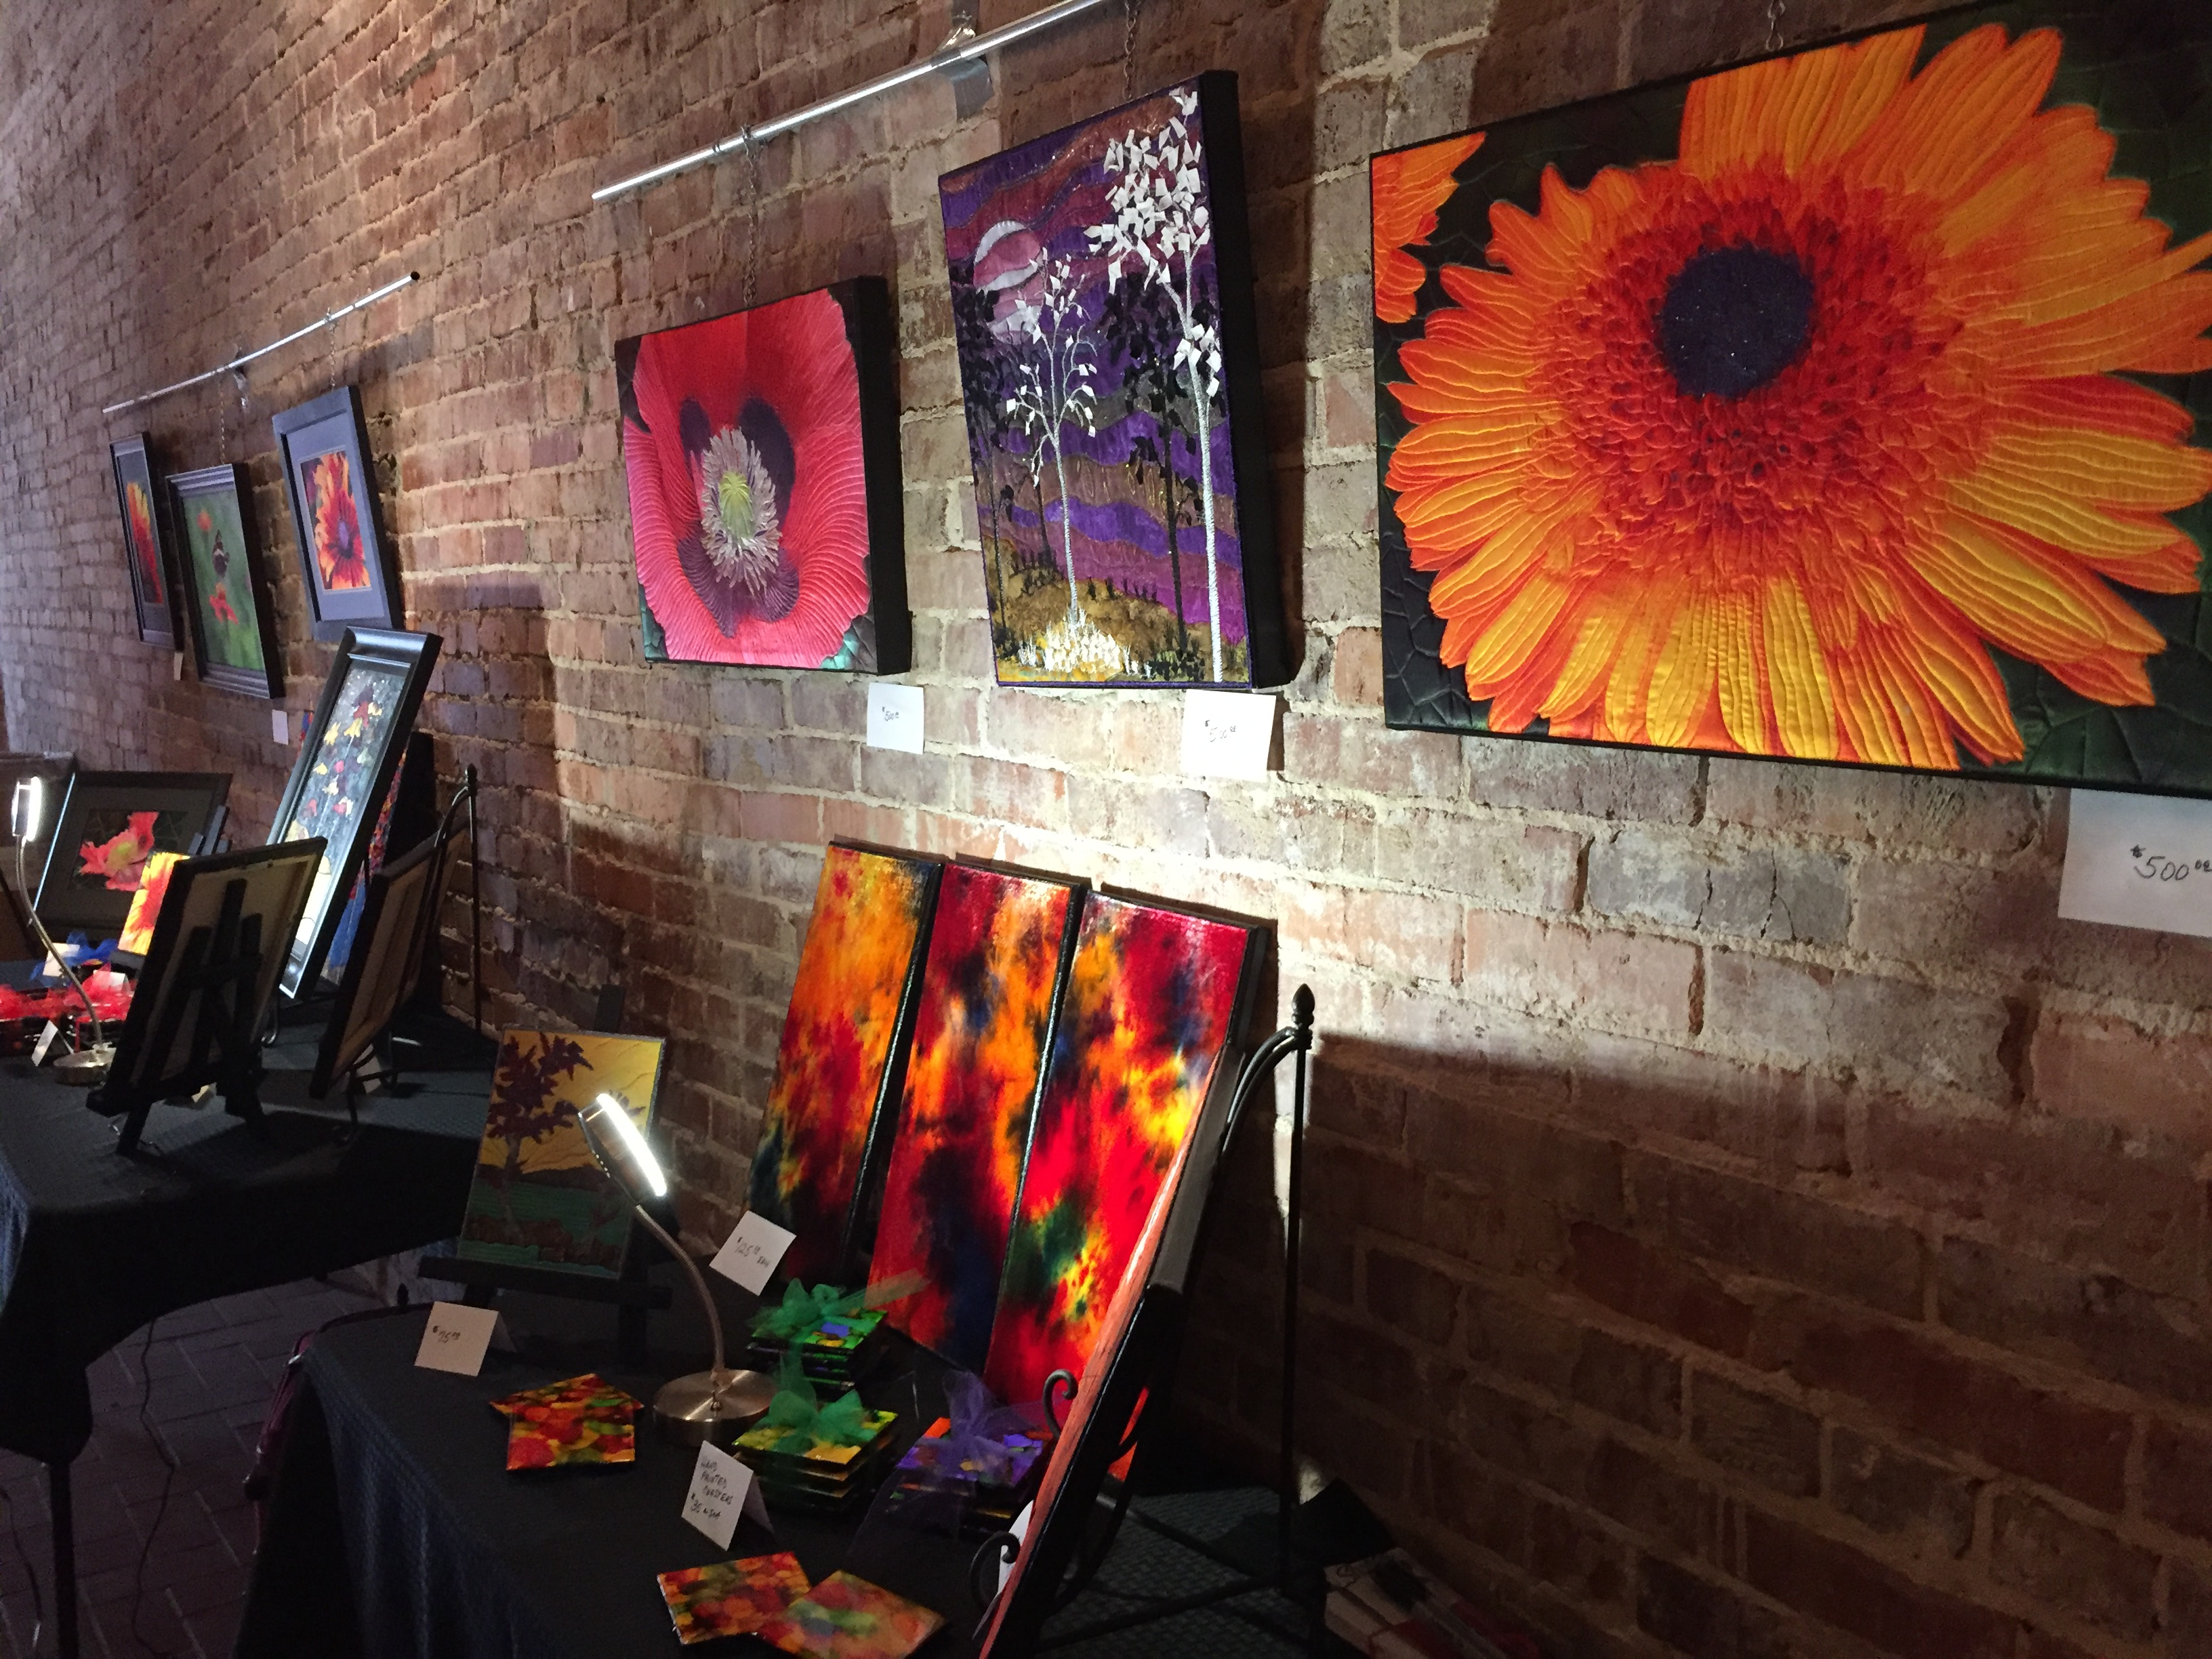 Exhibition at Fort Smith Arts Walk